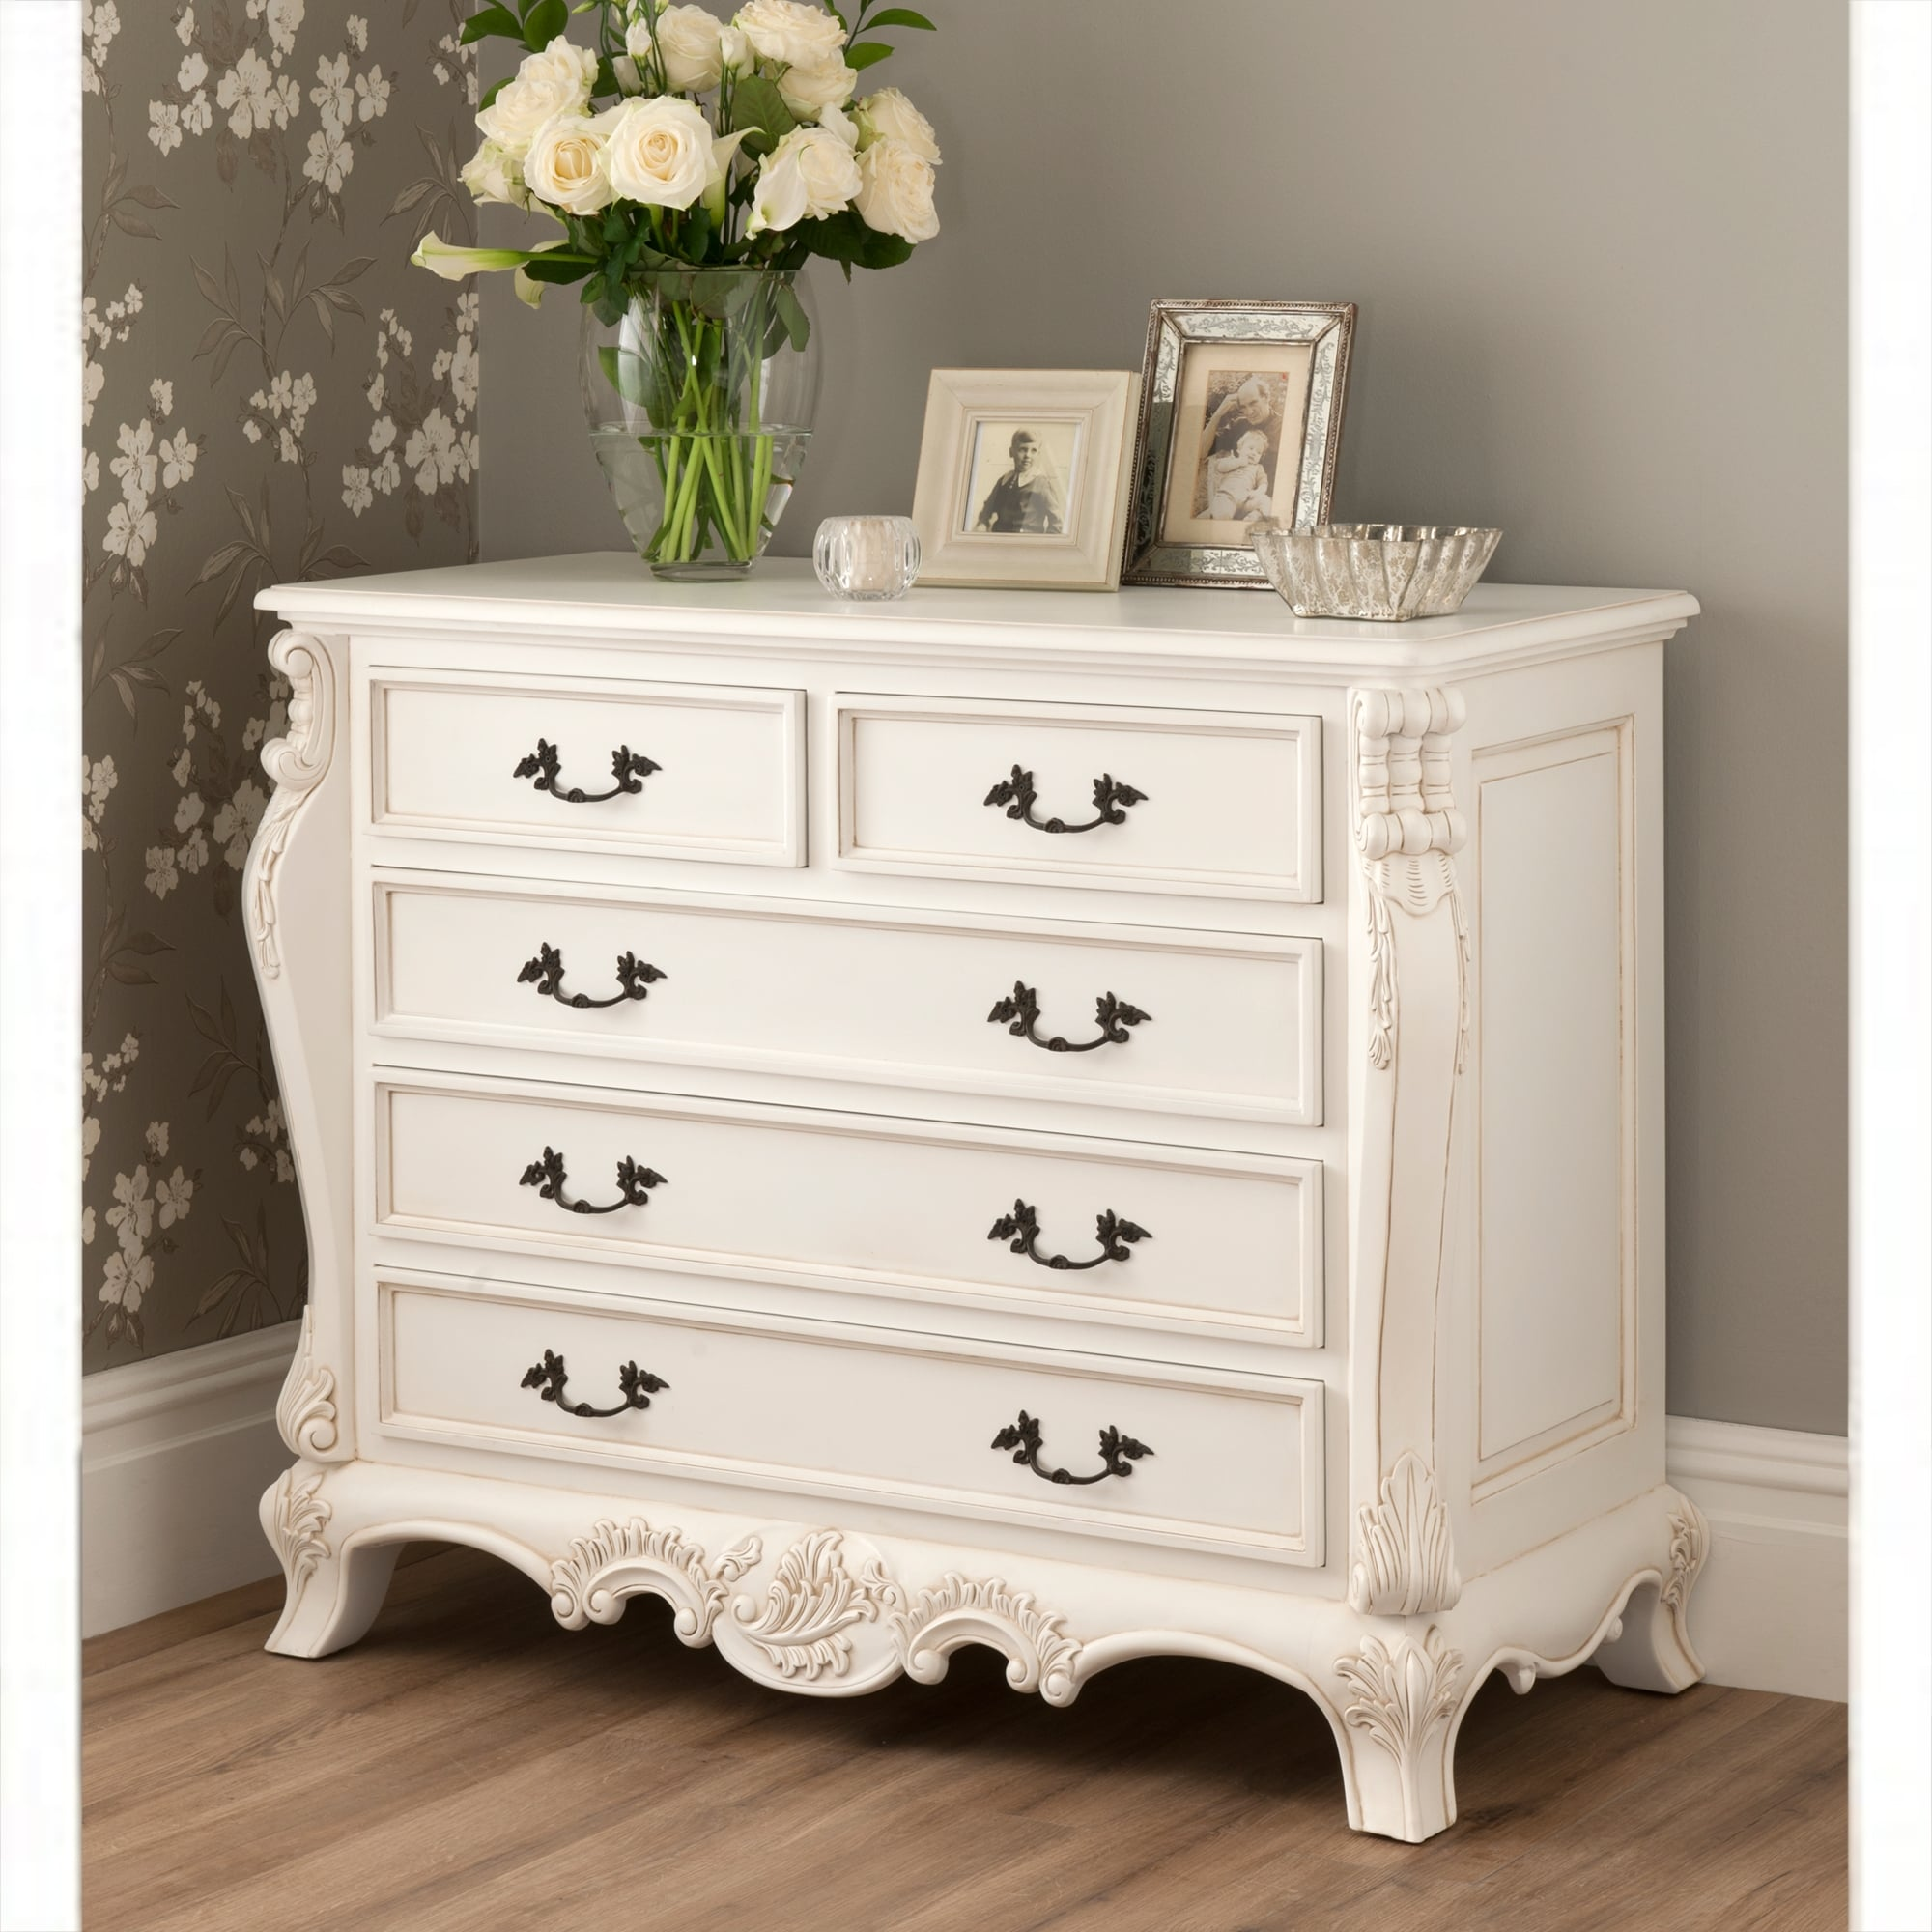 basket chic shabby grey brittany effect of chest hearts itm furniture with bedroom drawers